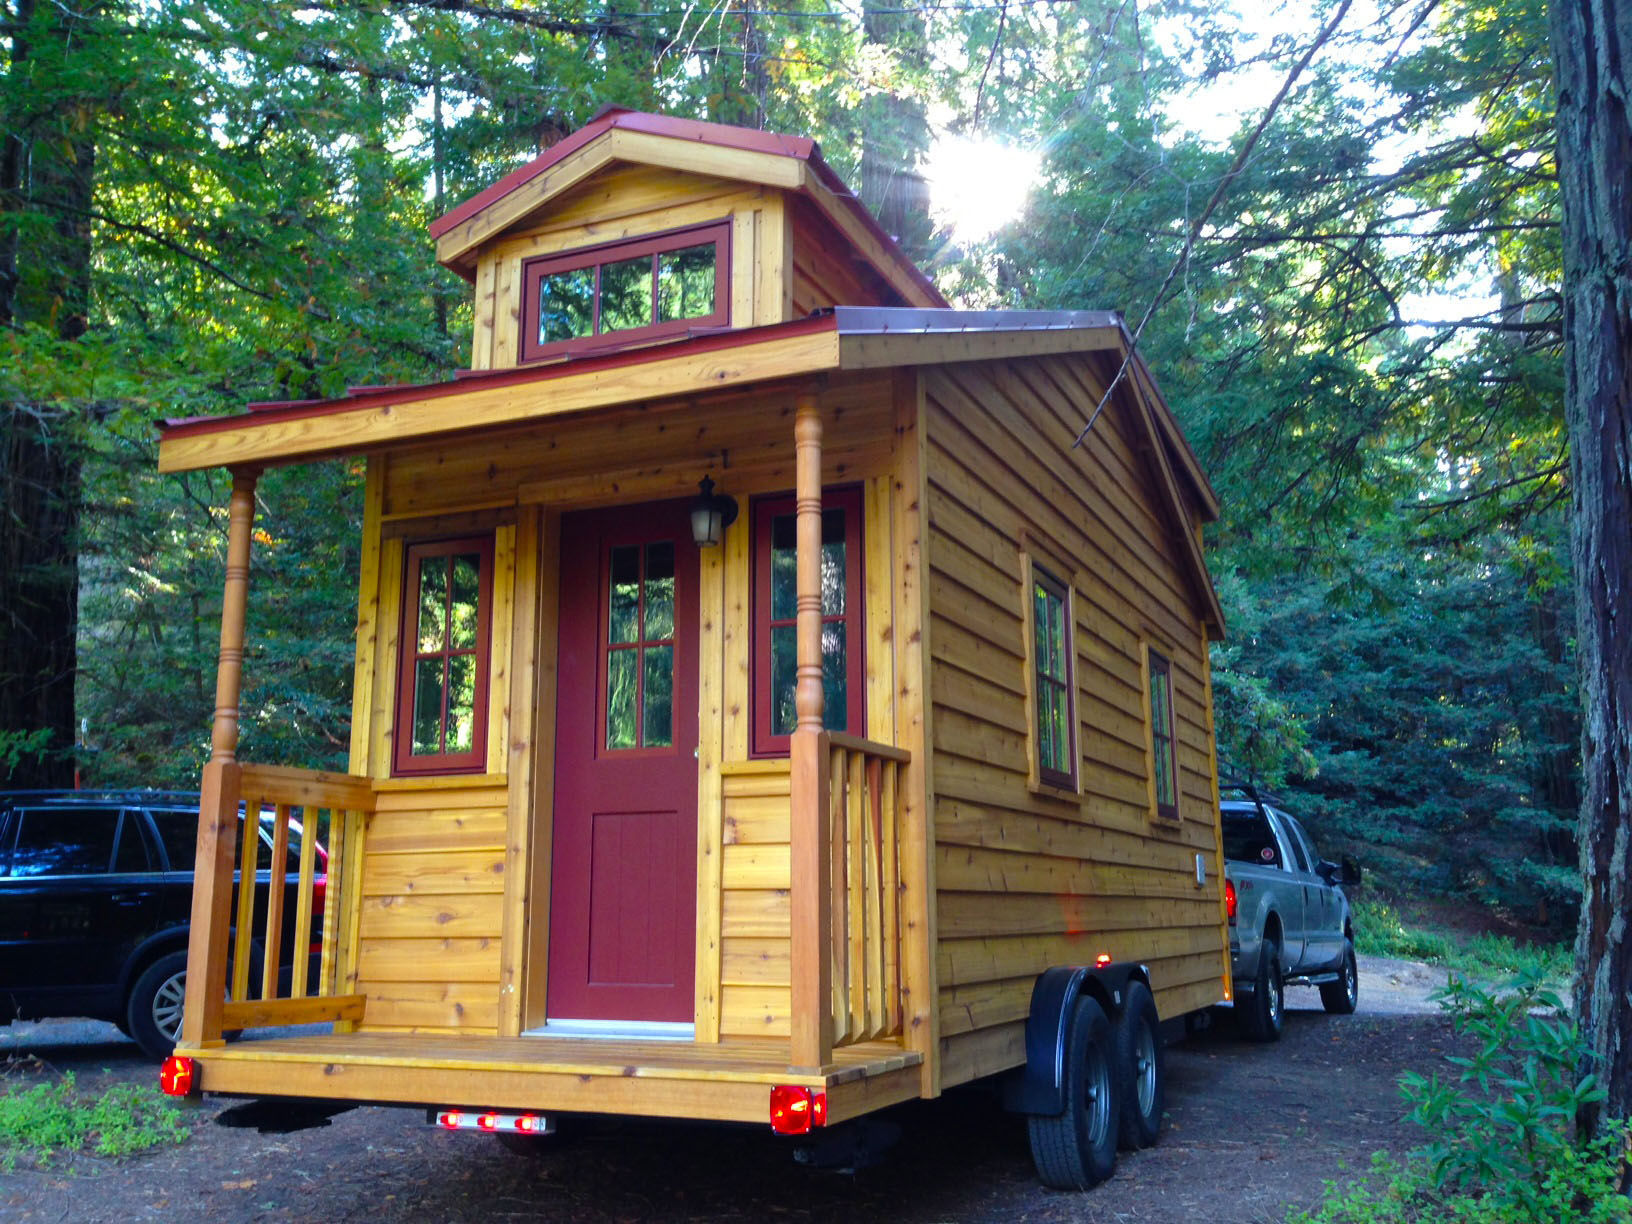 Pleasant Big Ideas Inside Tiny Houses Home Garden Journalnow Com Largest Home Design Picture Inspirations Pitcheantrous